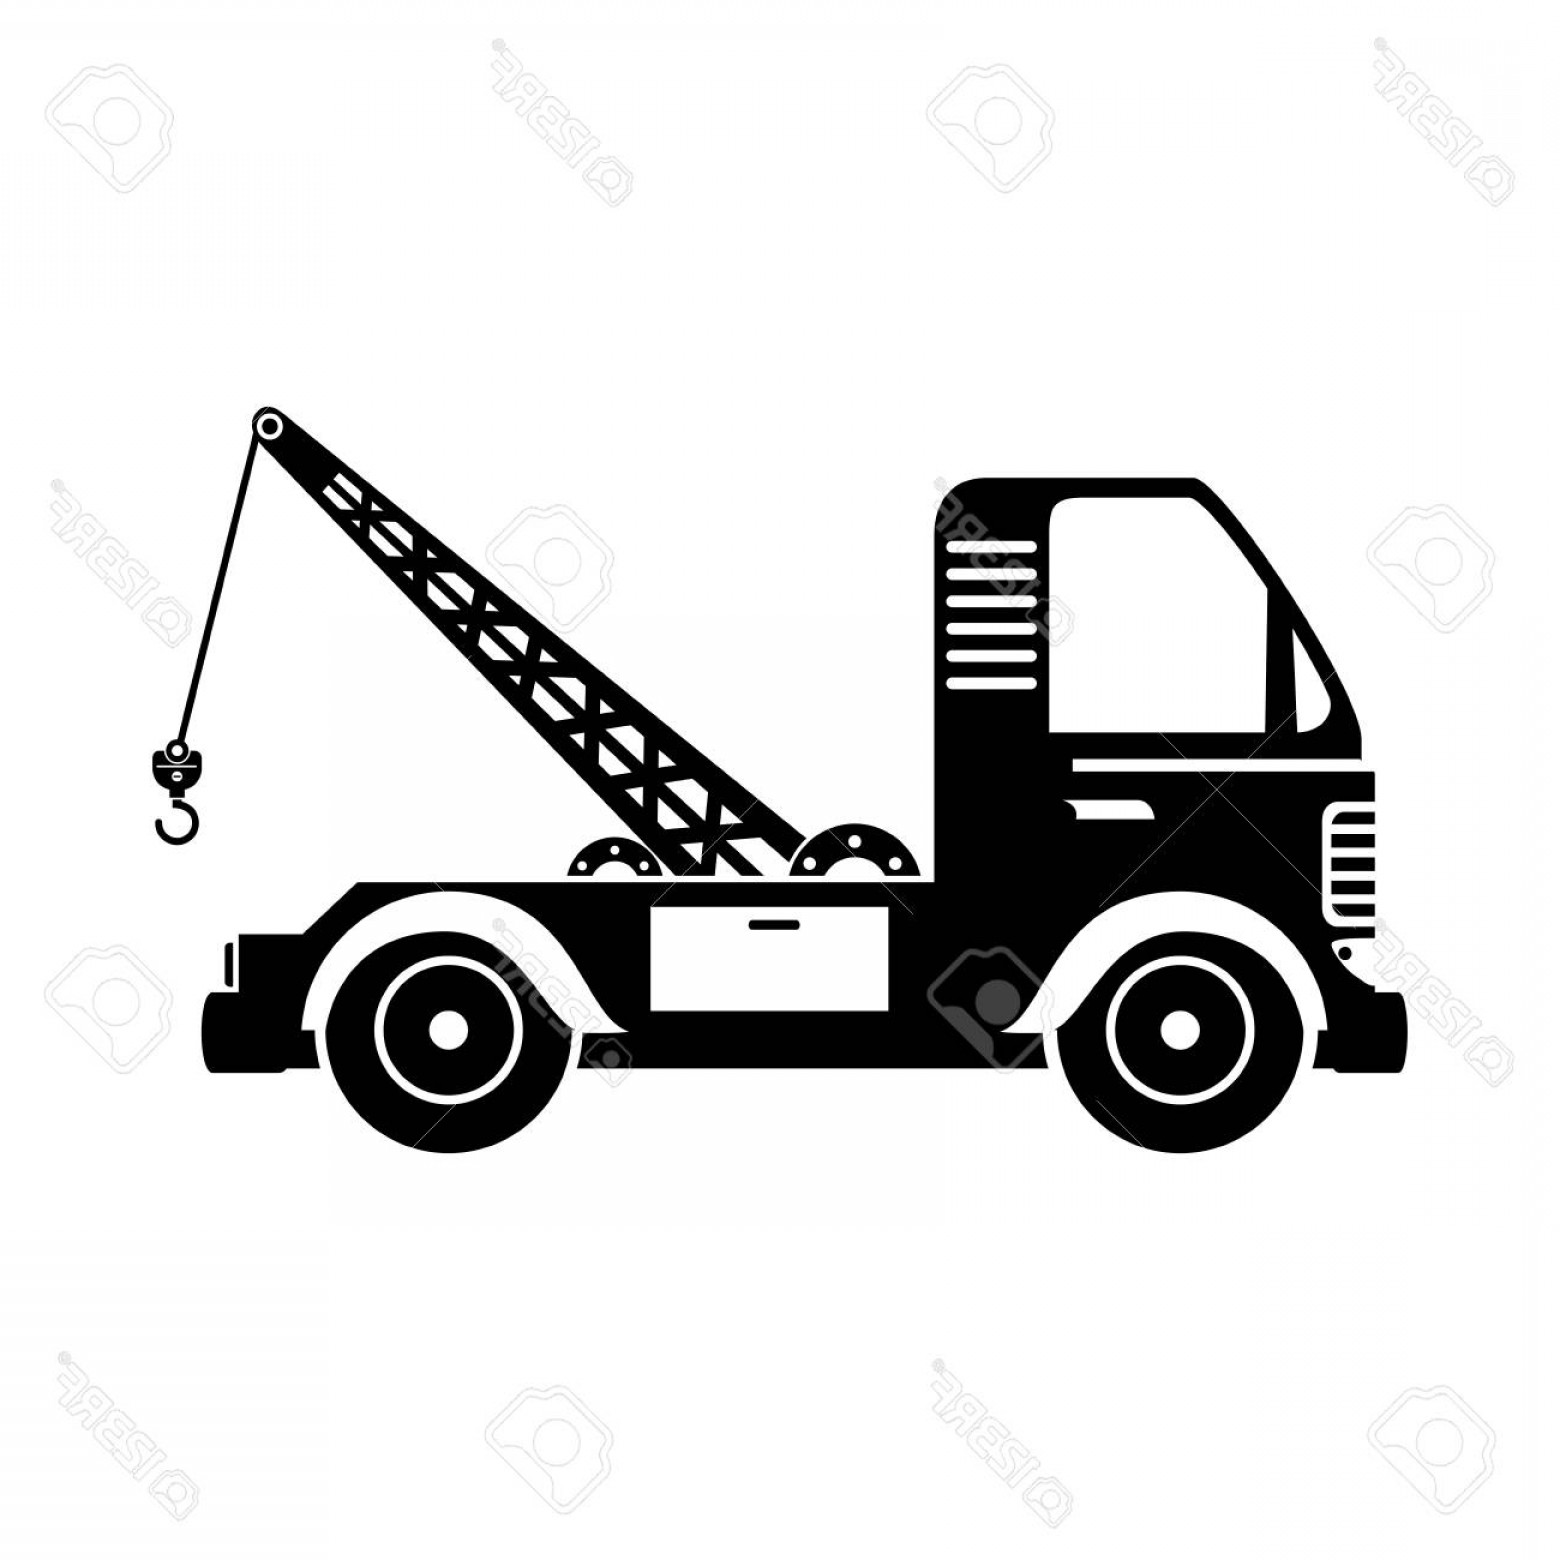 Tow Hook Vector Art: Photostock Vector Tow Crane Truck Vehicle Cargo Moving Hook Mechanical Vector Isolated Illustration